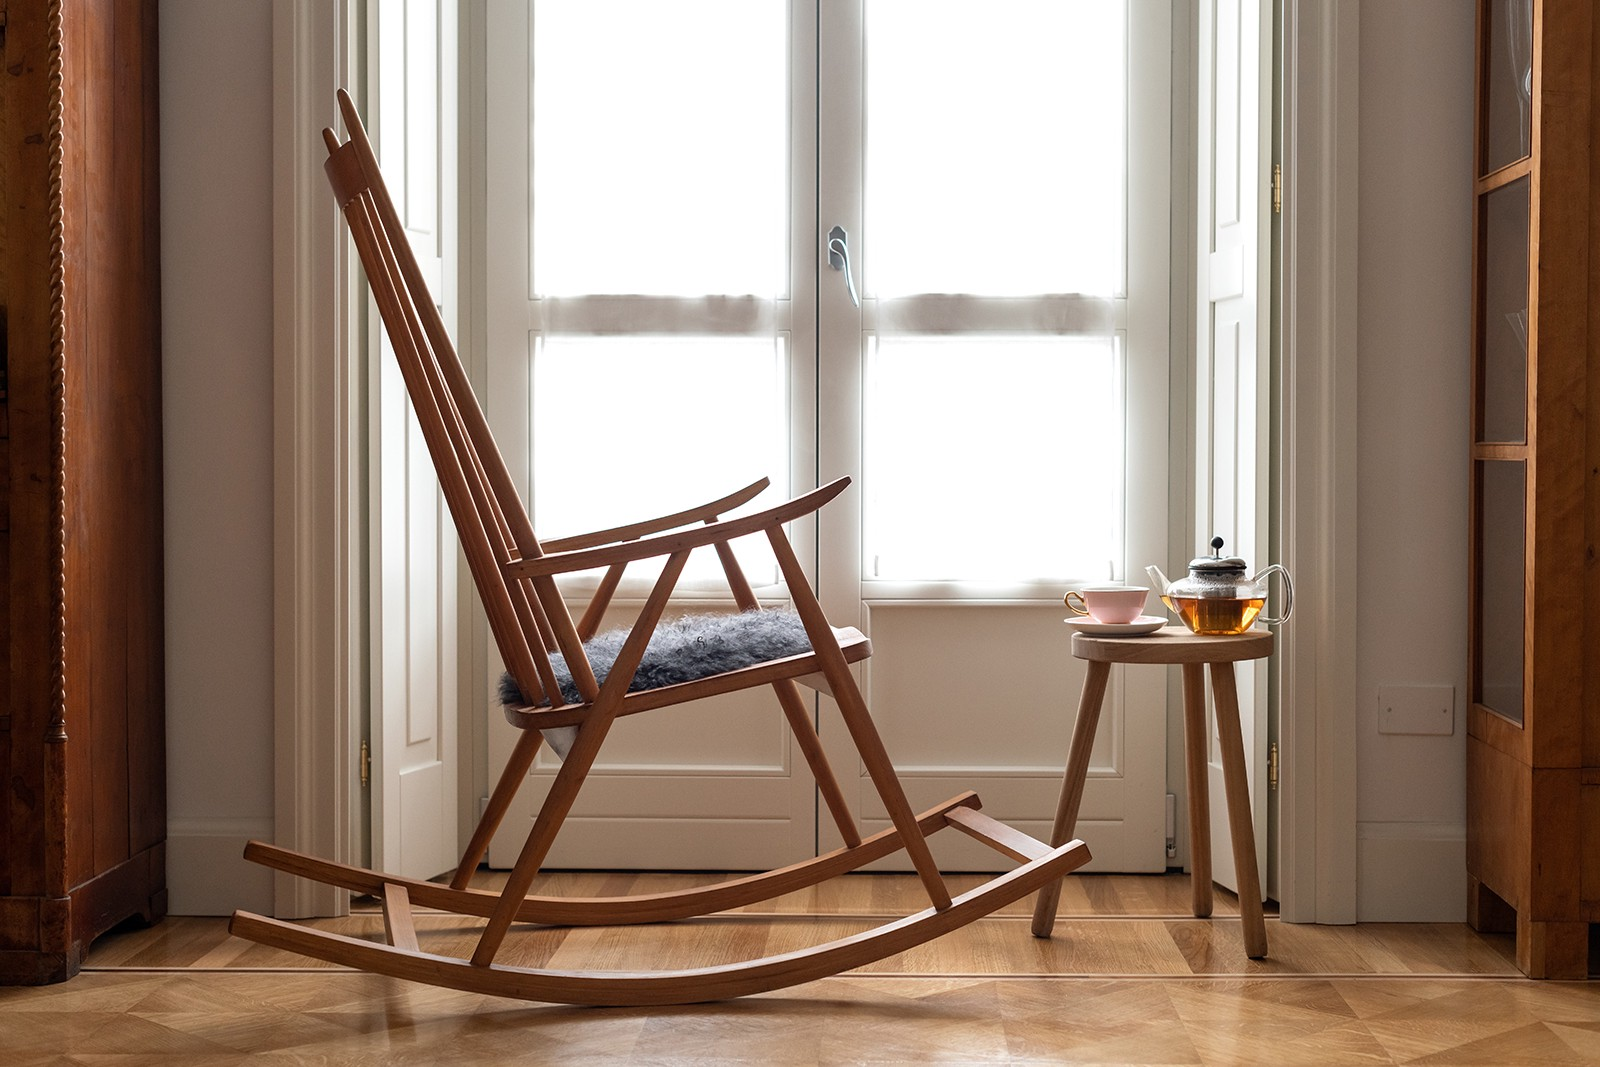 Photo of a rocking chair in front of a window with a small table with tea on top.